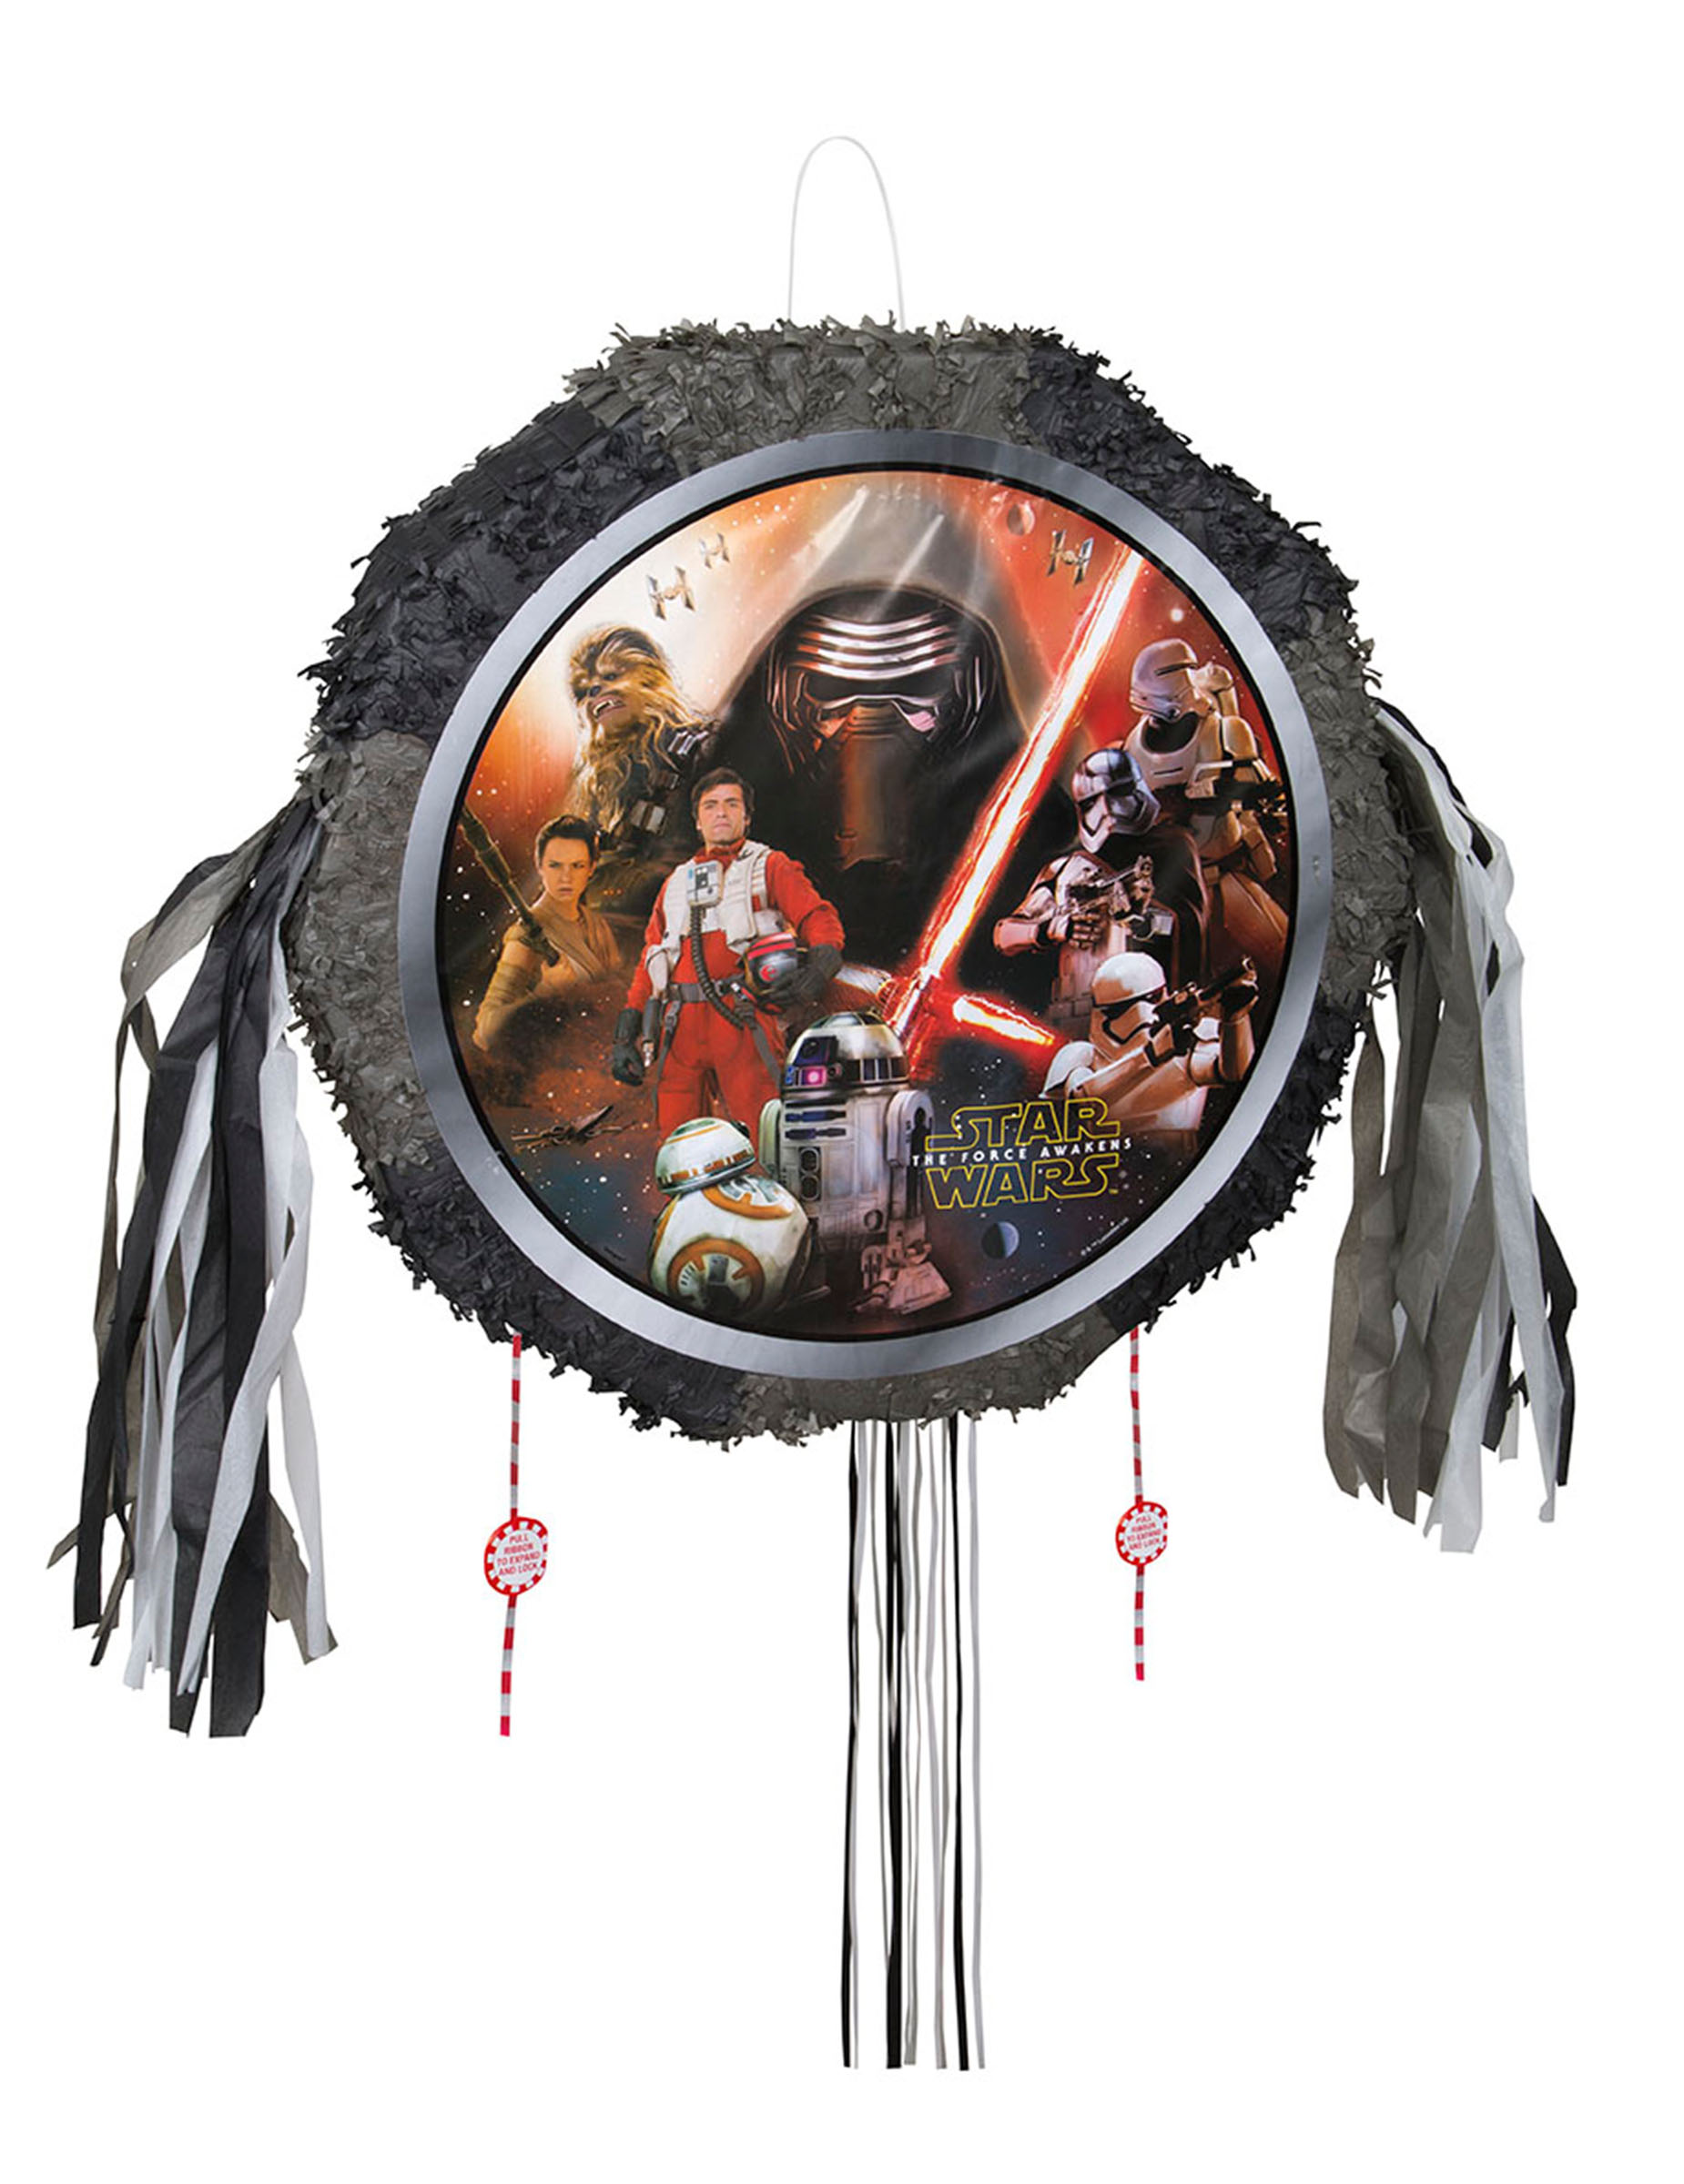 pinata star wars vii d coration anniversaire et f tes th me sur vegaoo party. Black Bedroom Furniture Sets. Home Design Ideas